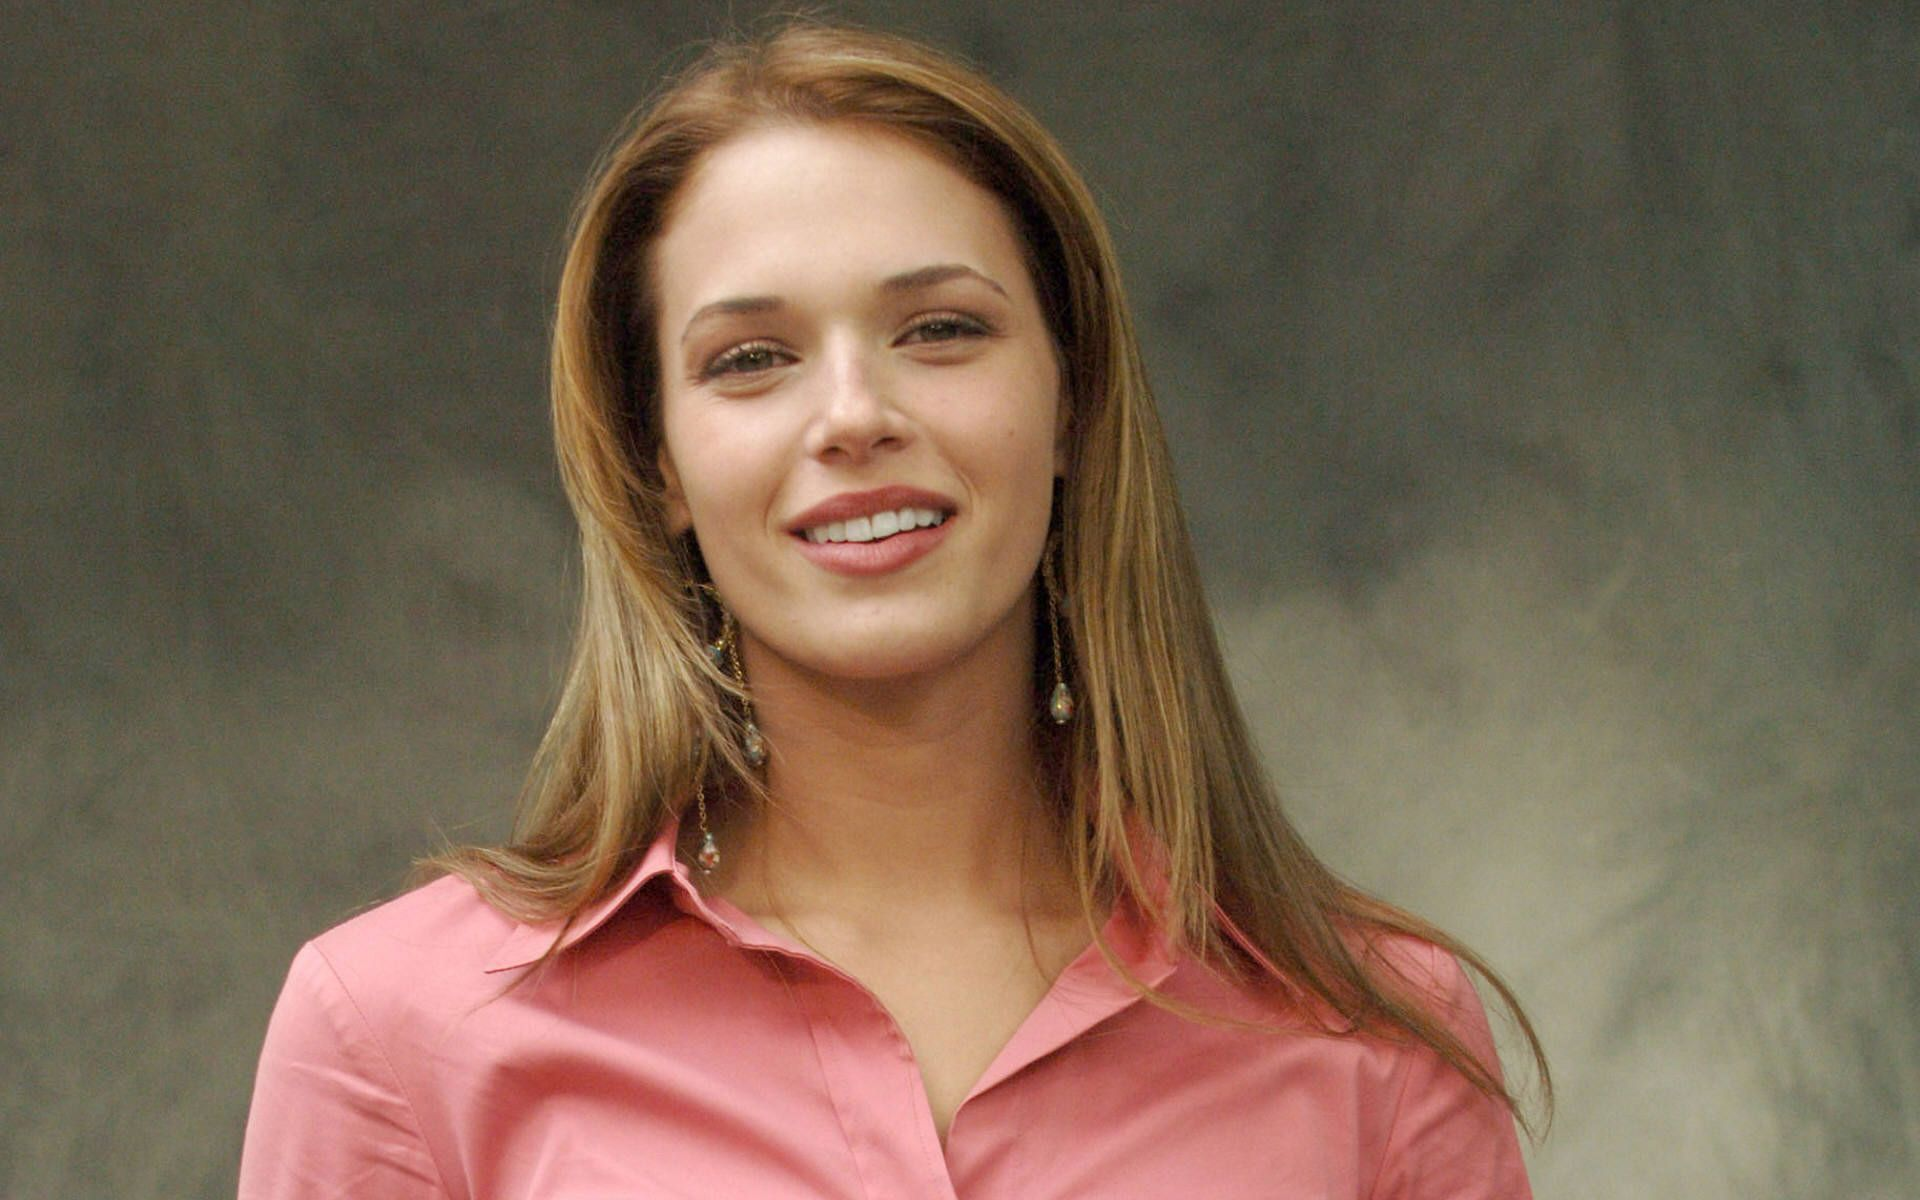 Hd Amanda Righetti Hq Wallpapers Screen Savers After Baby CloudPix